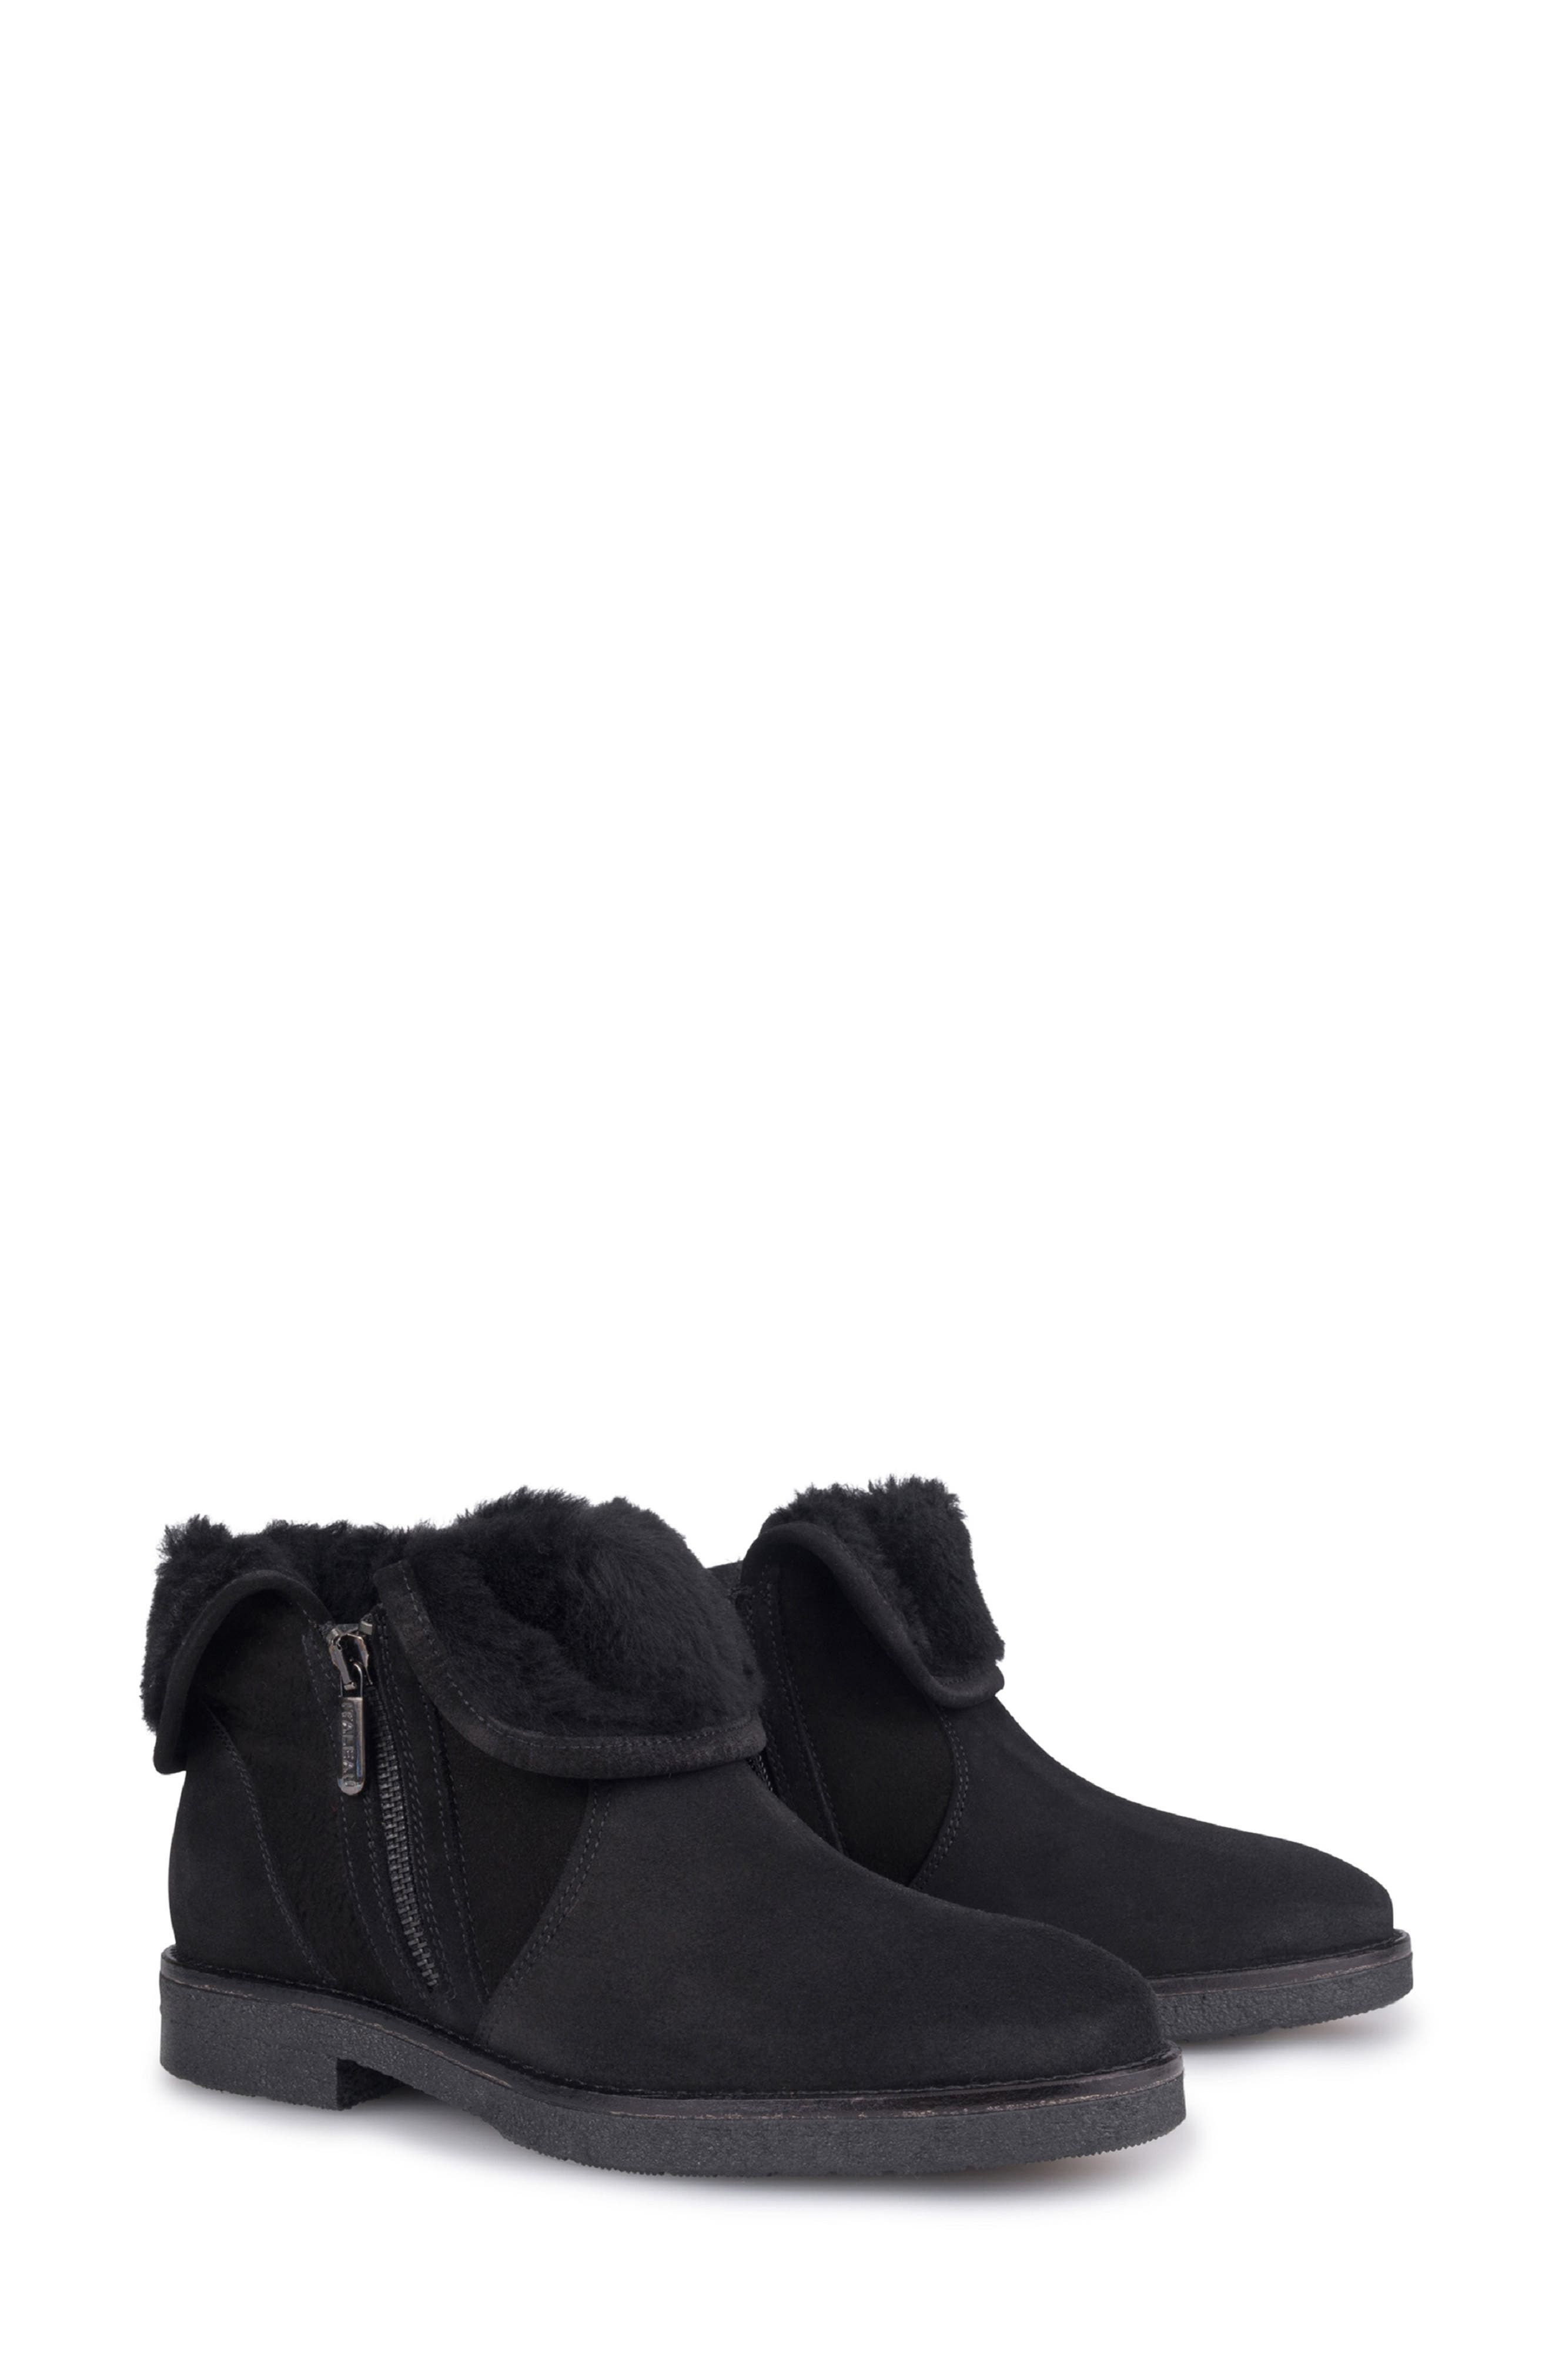 Rosie Genuine Shearling Lined Bootie, Main, color, NERO